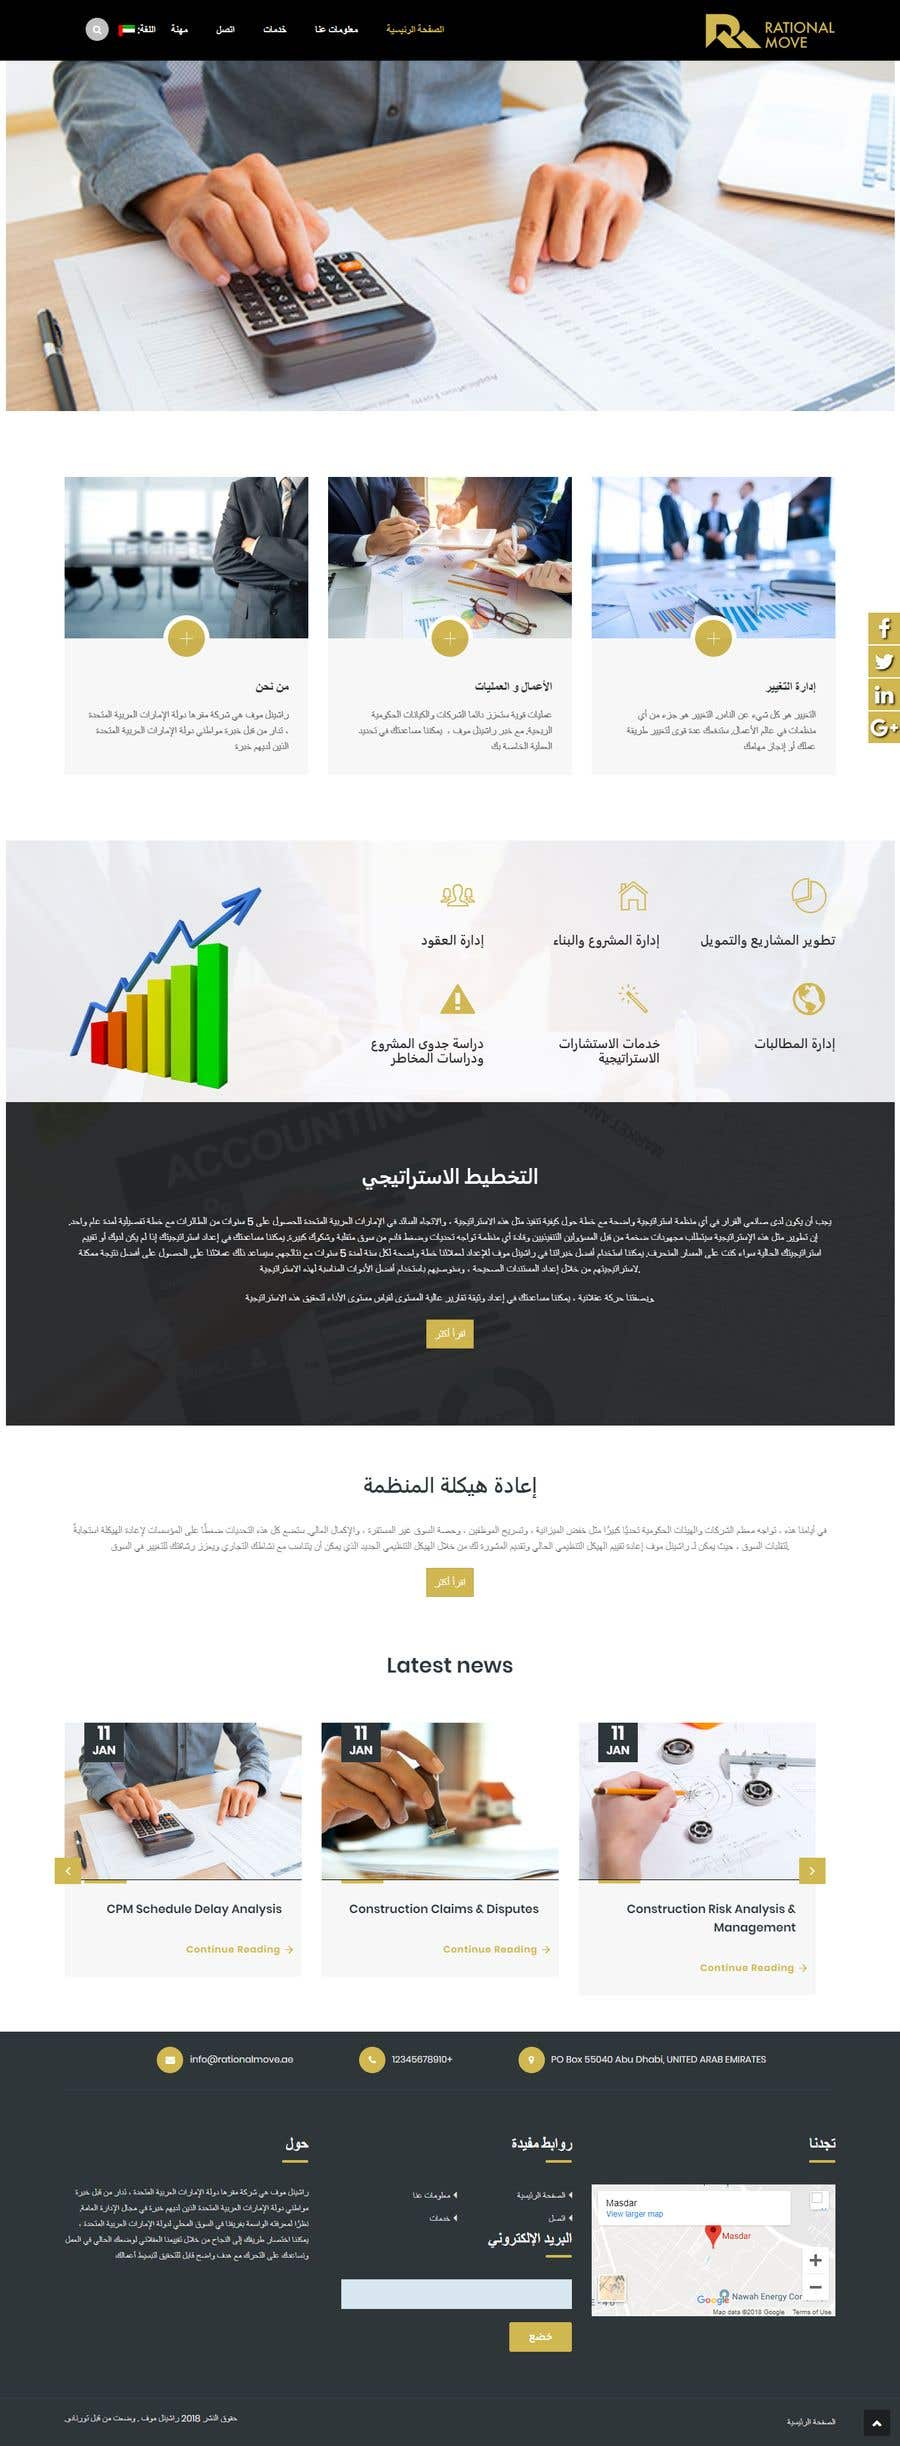 Bài tham dự cuộc thi #4 cho Translate website to Arabic and optimize it with HTML tags